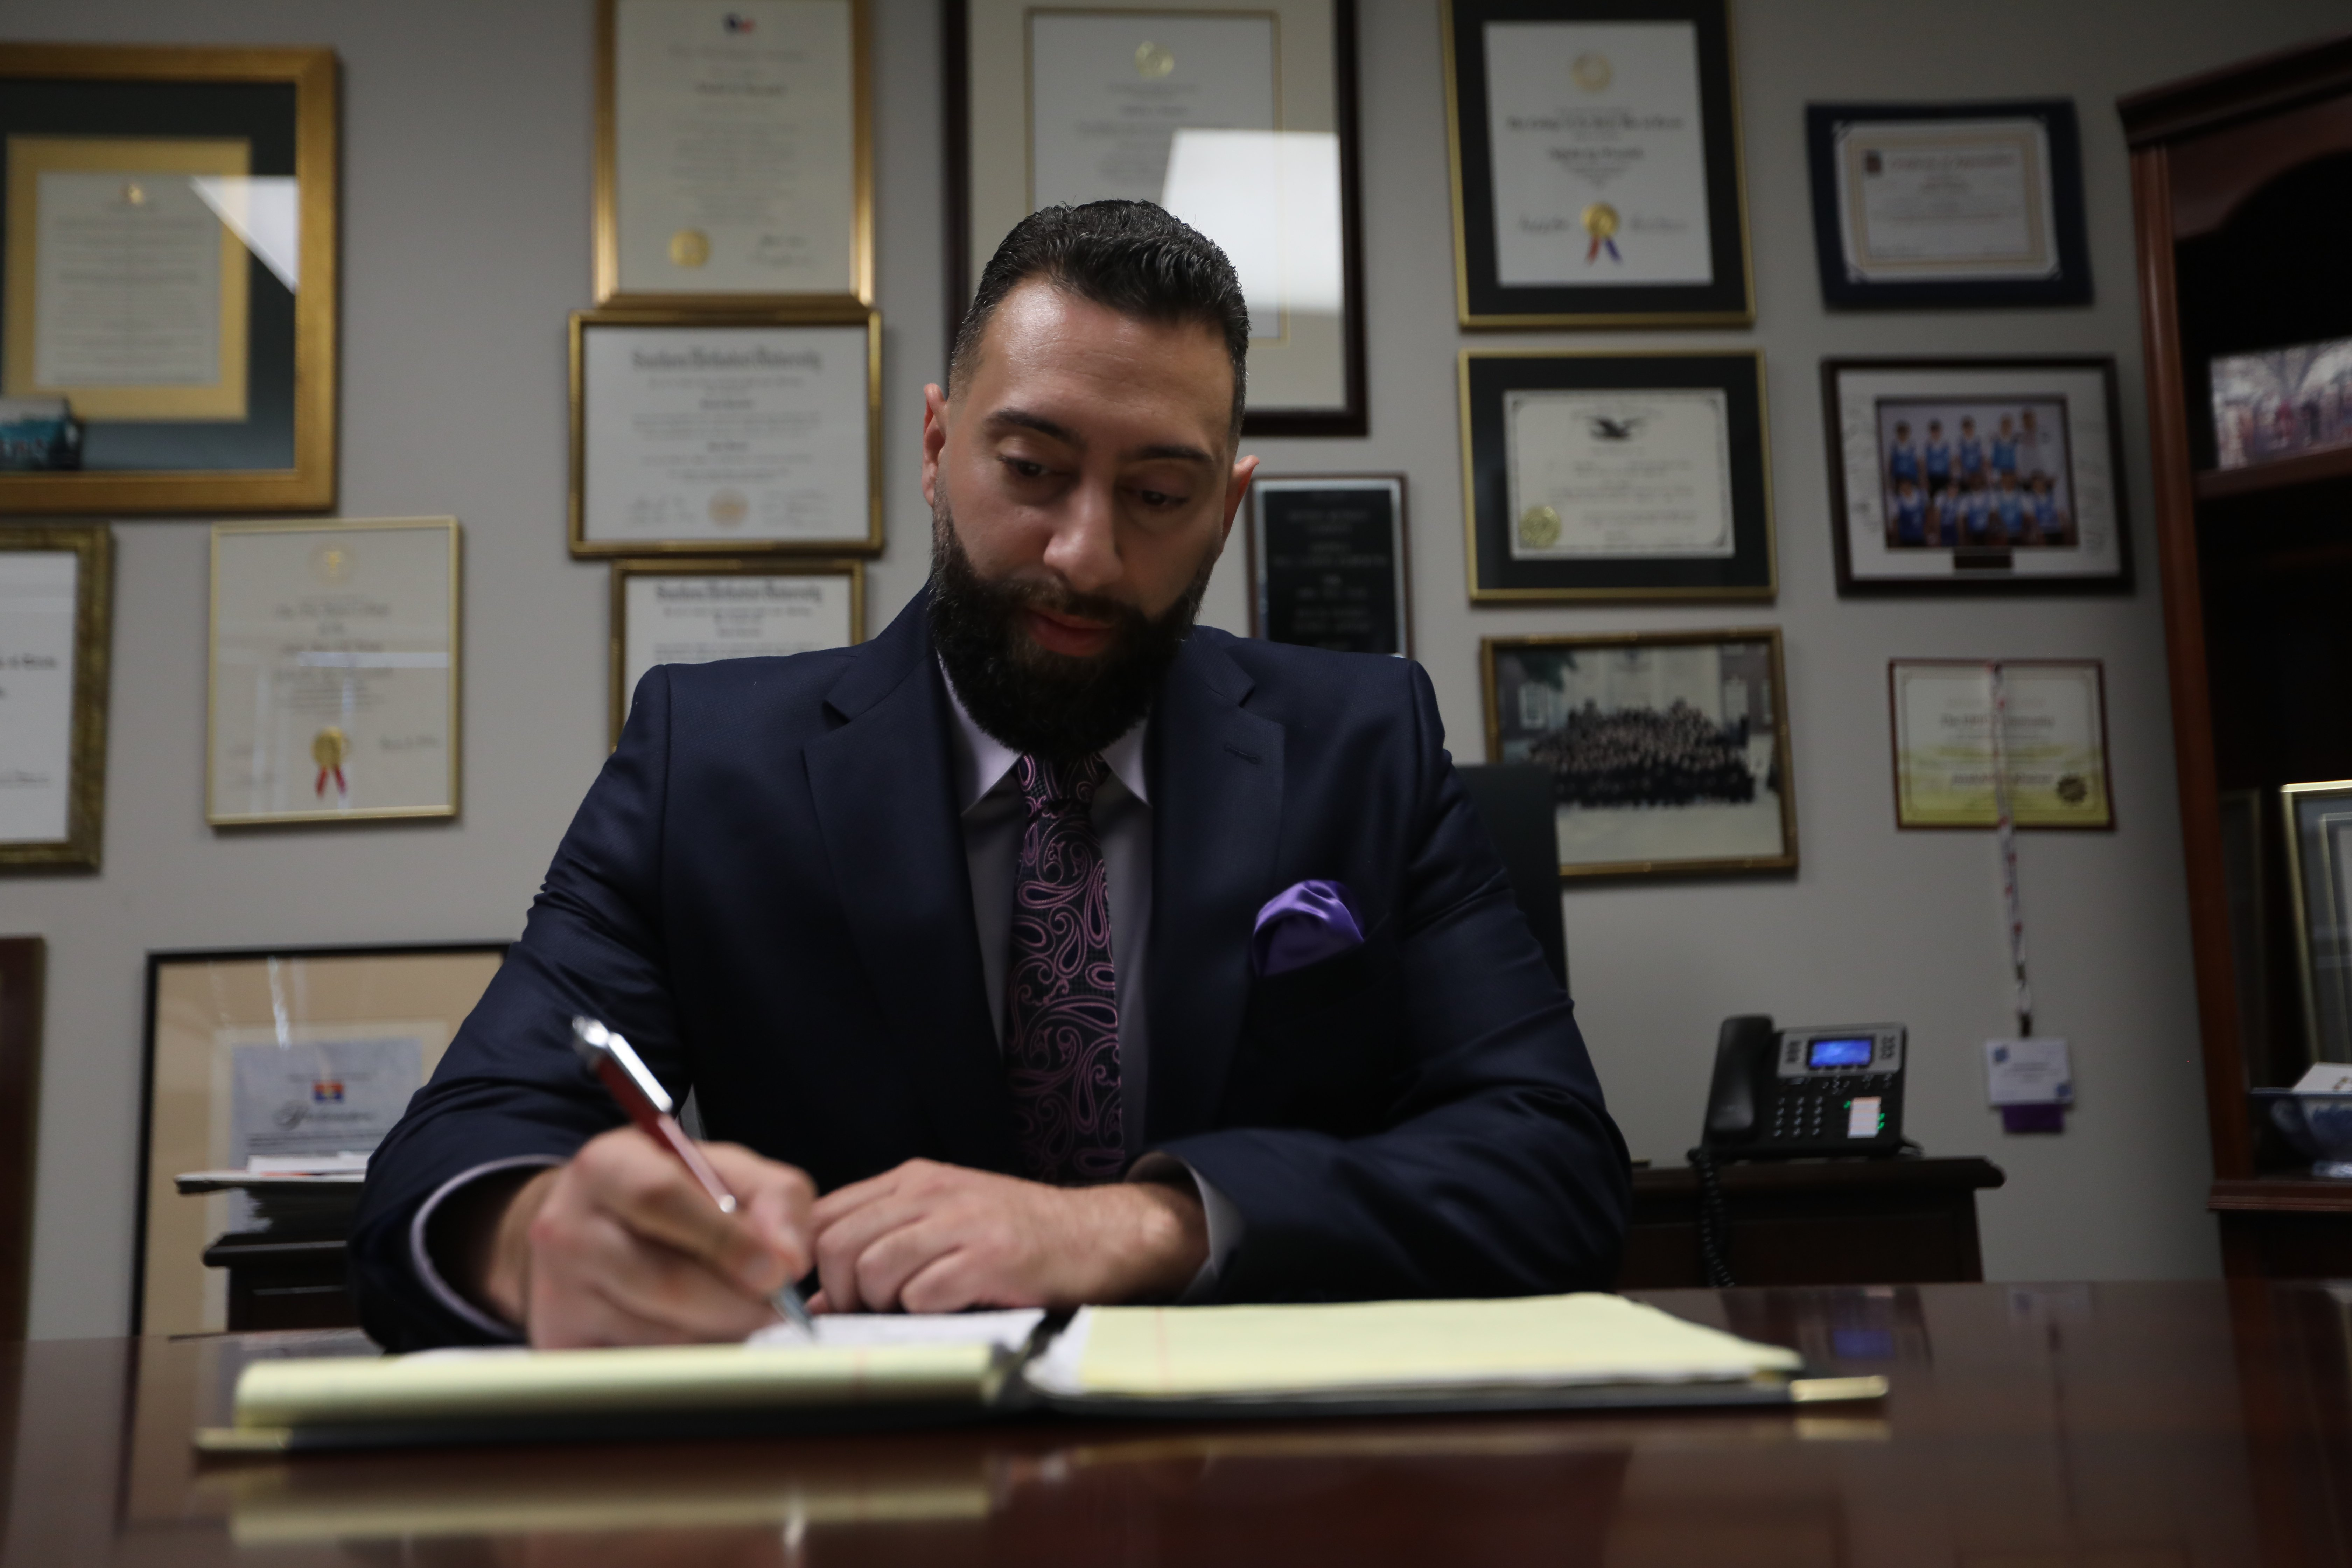 Attorney Hamideh writing on a legal pad